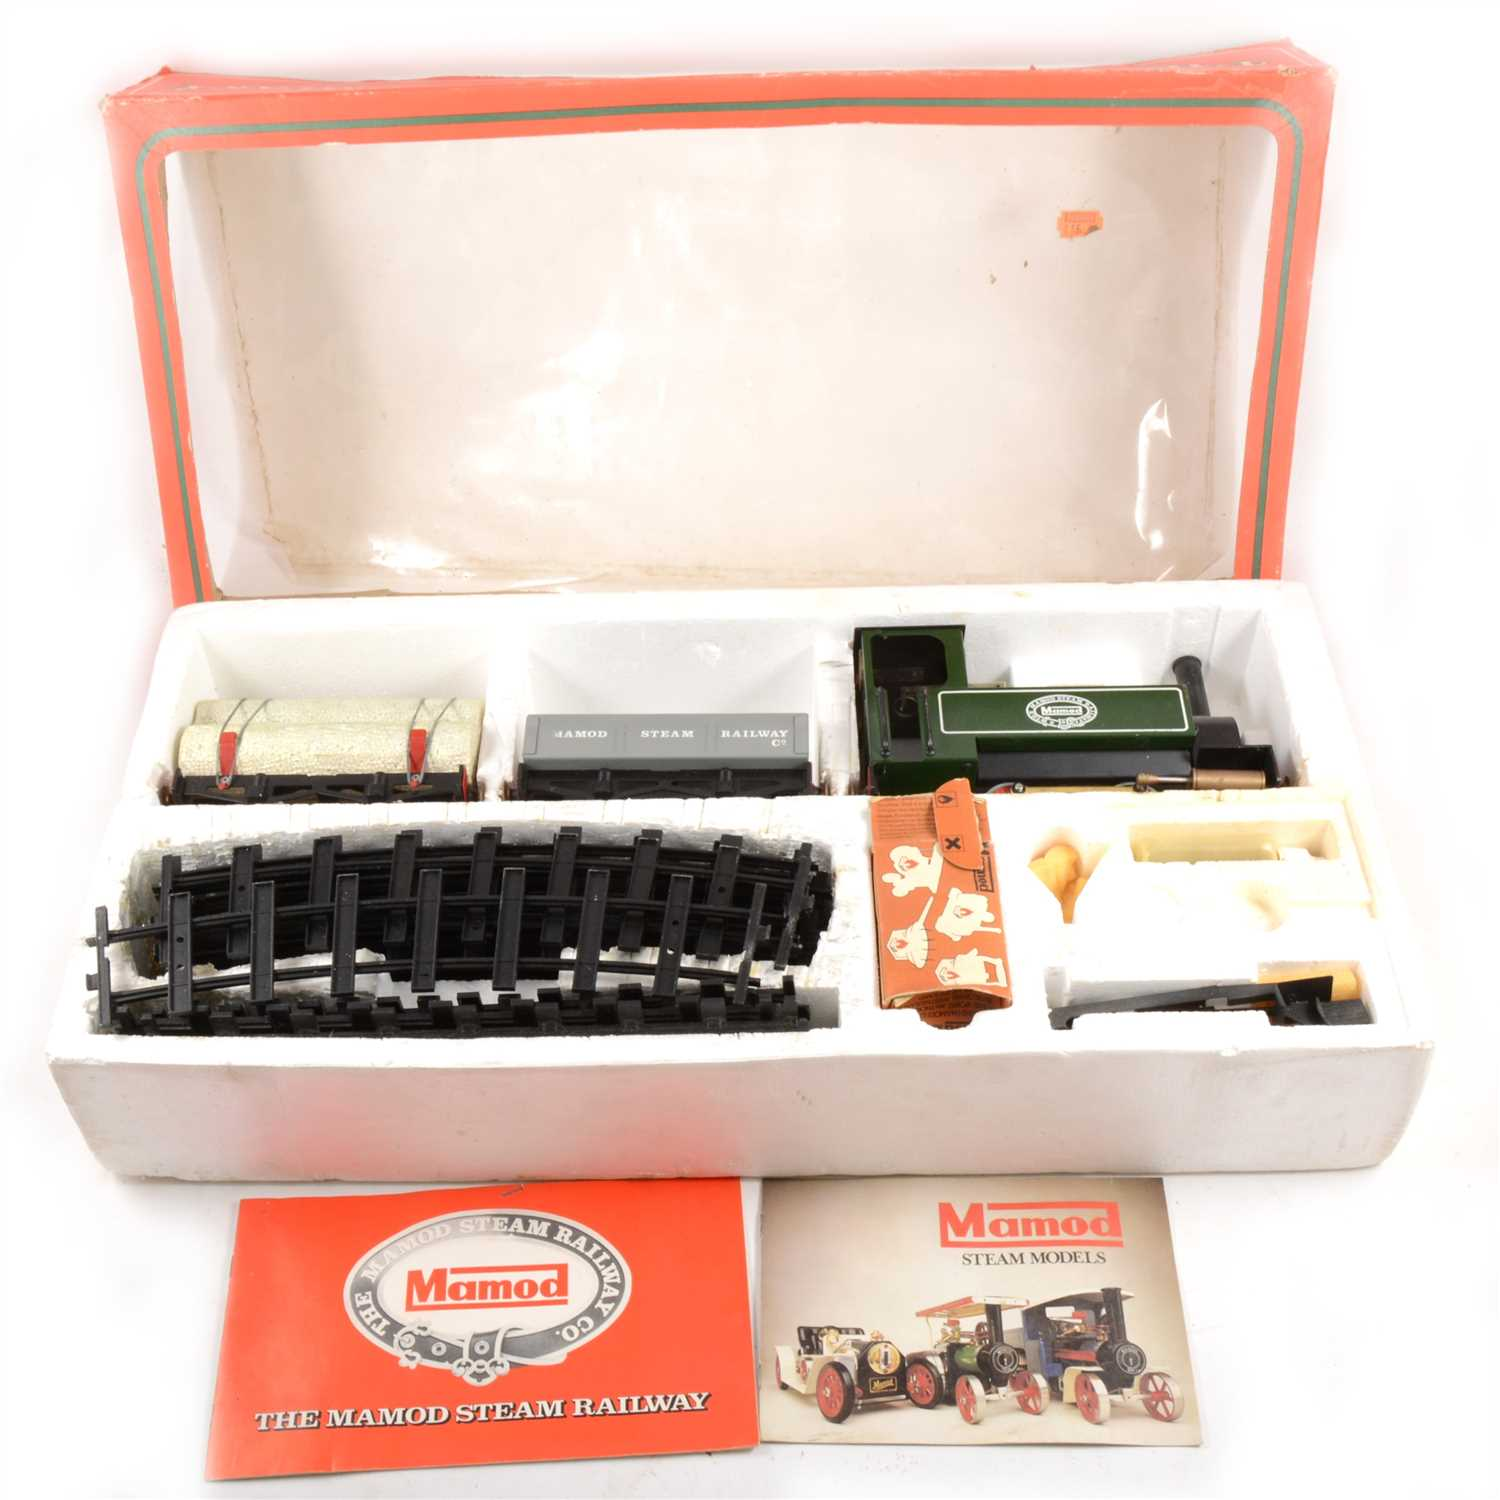 Lot 13-Mamod live steam locomotive RS1 set, boxed with two wagons, track and accessories, boxed.